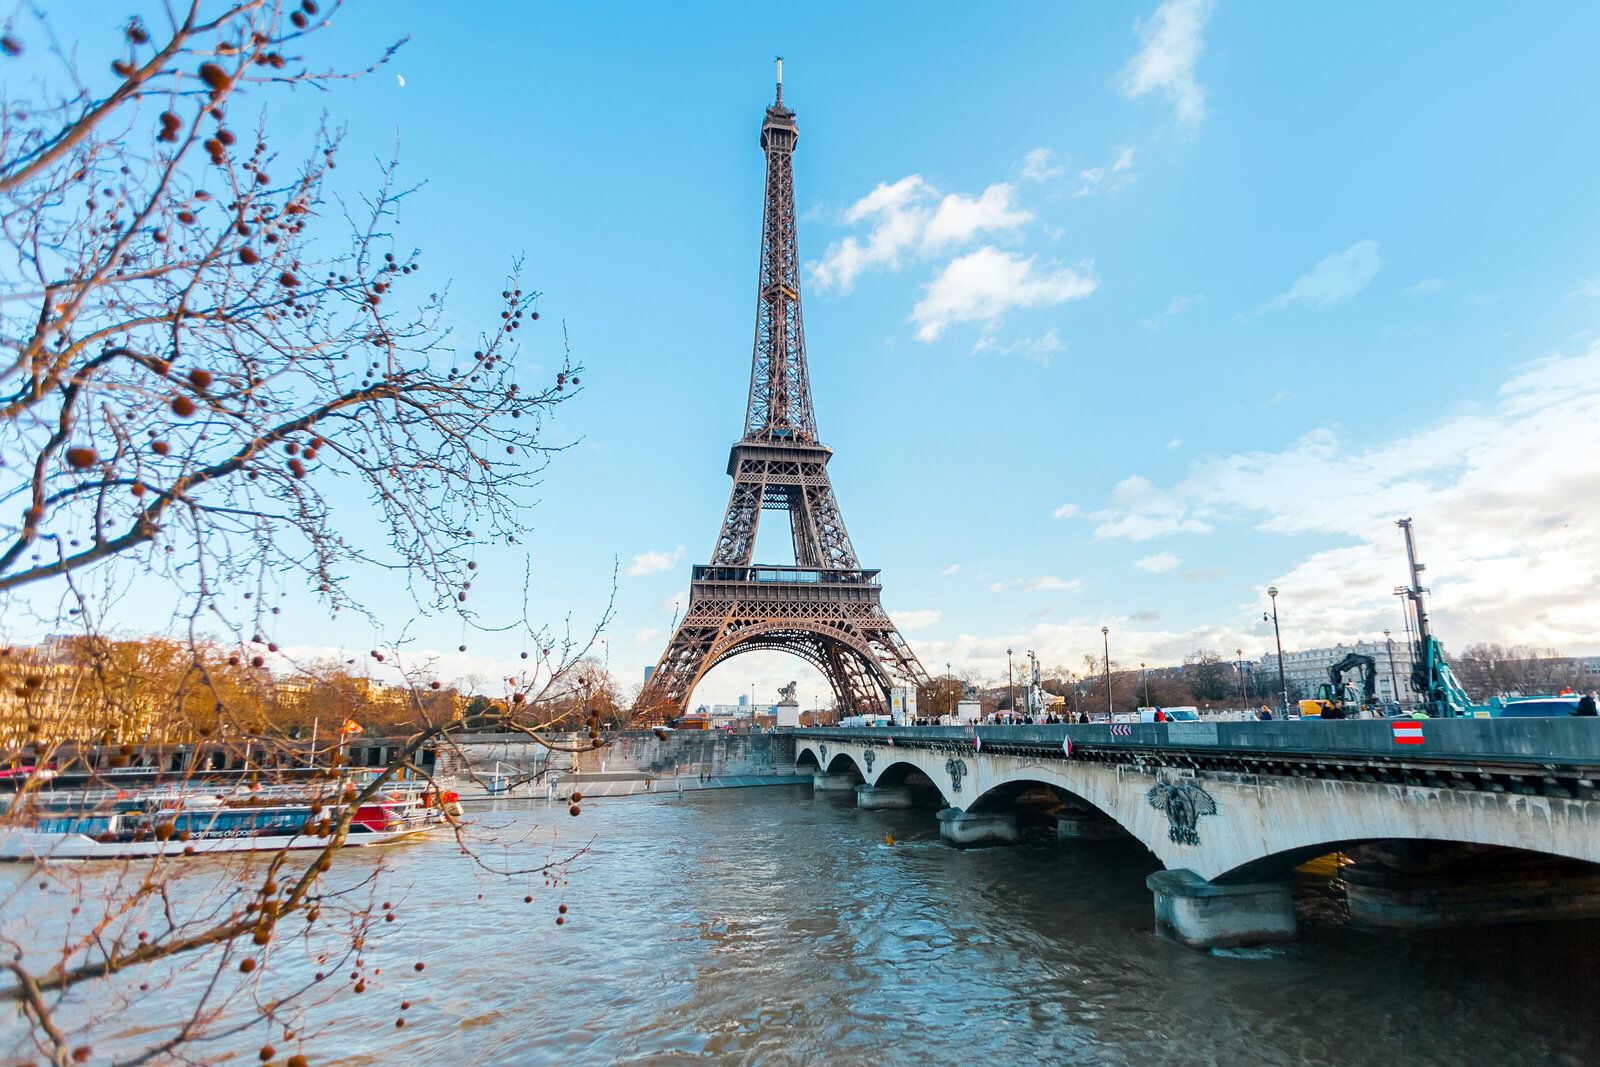 013-KBP-Eiffel-Tower-Seine-River